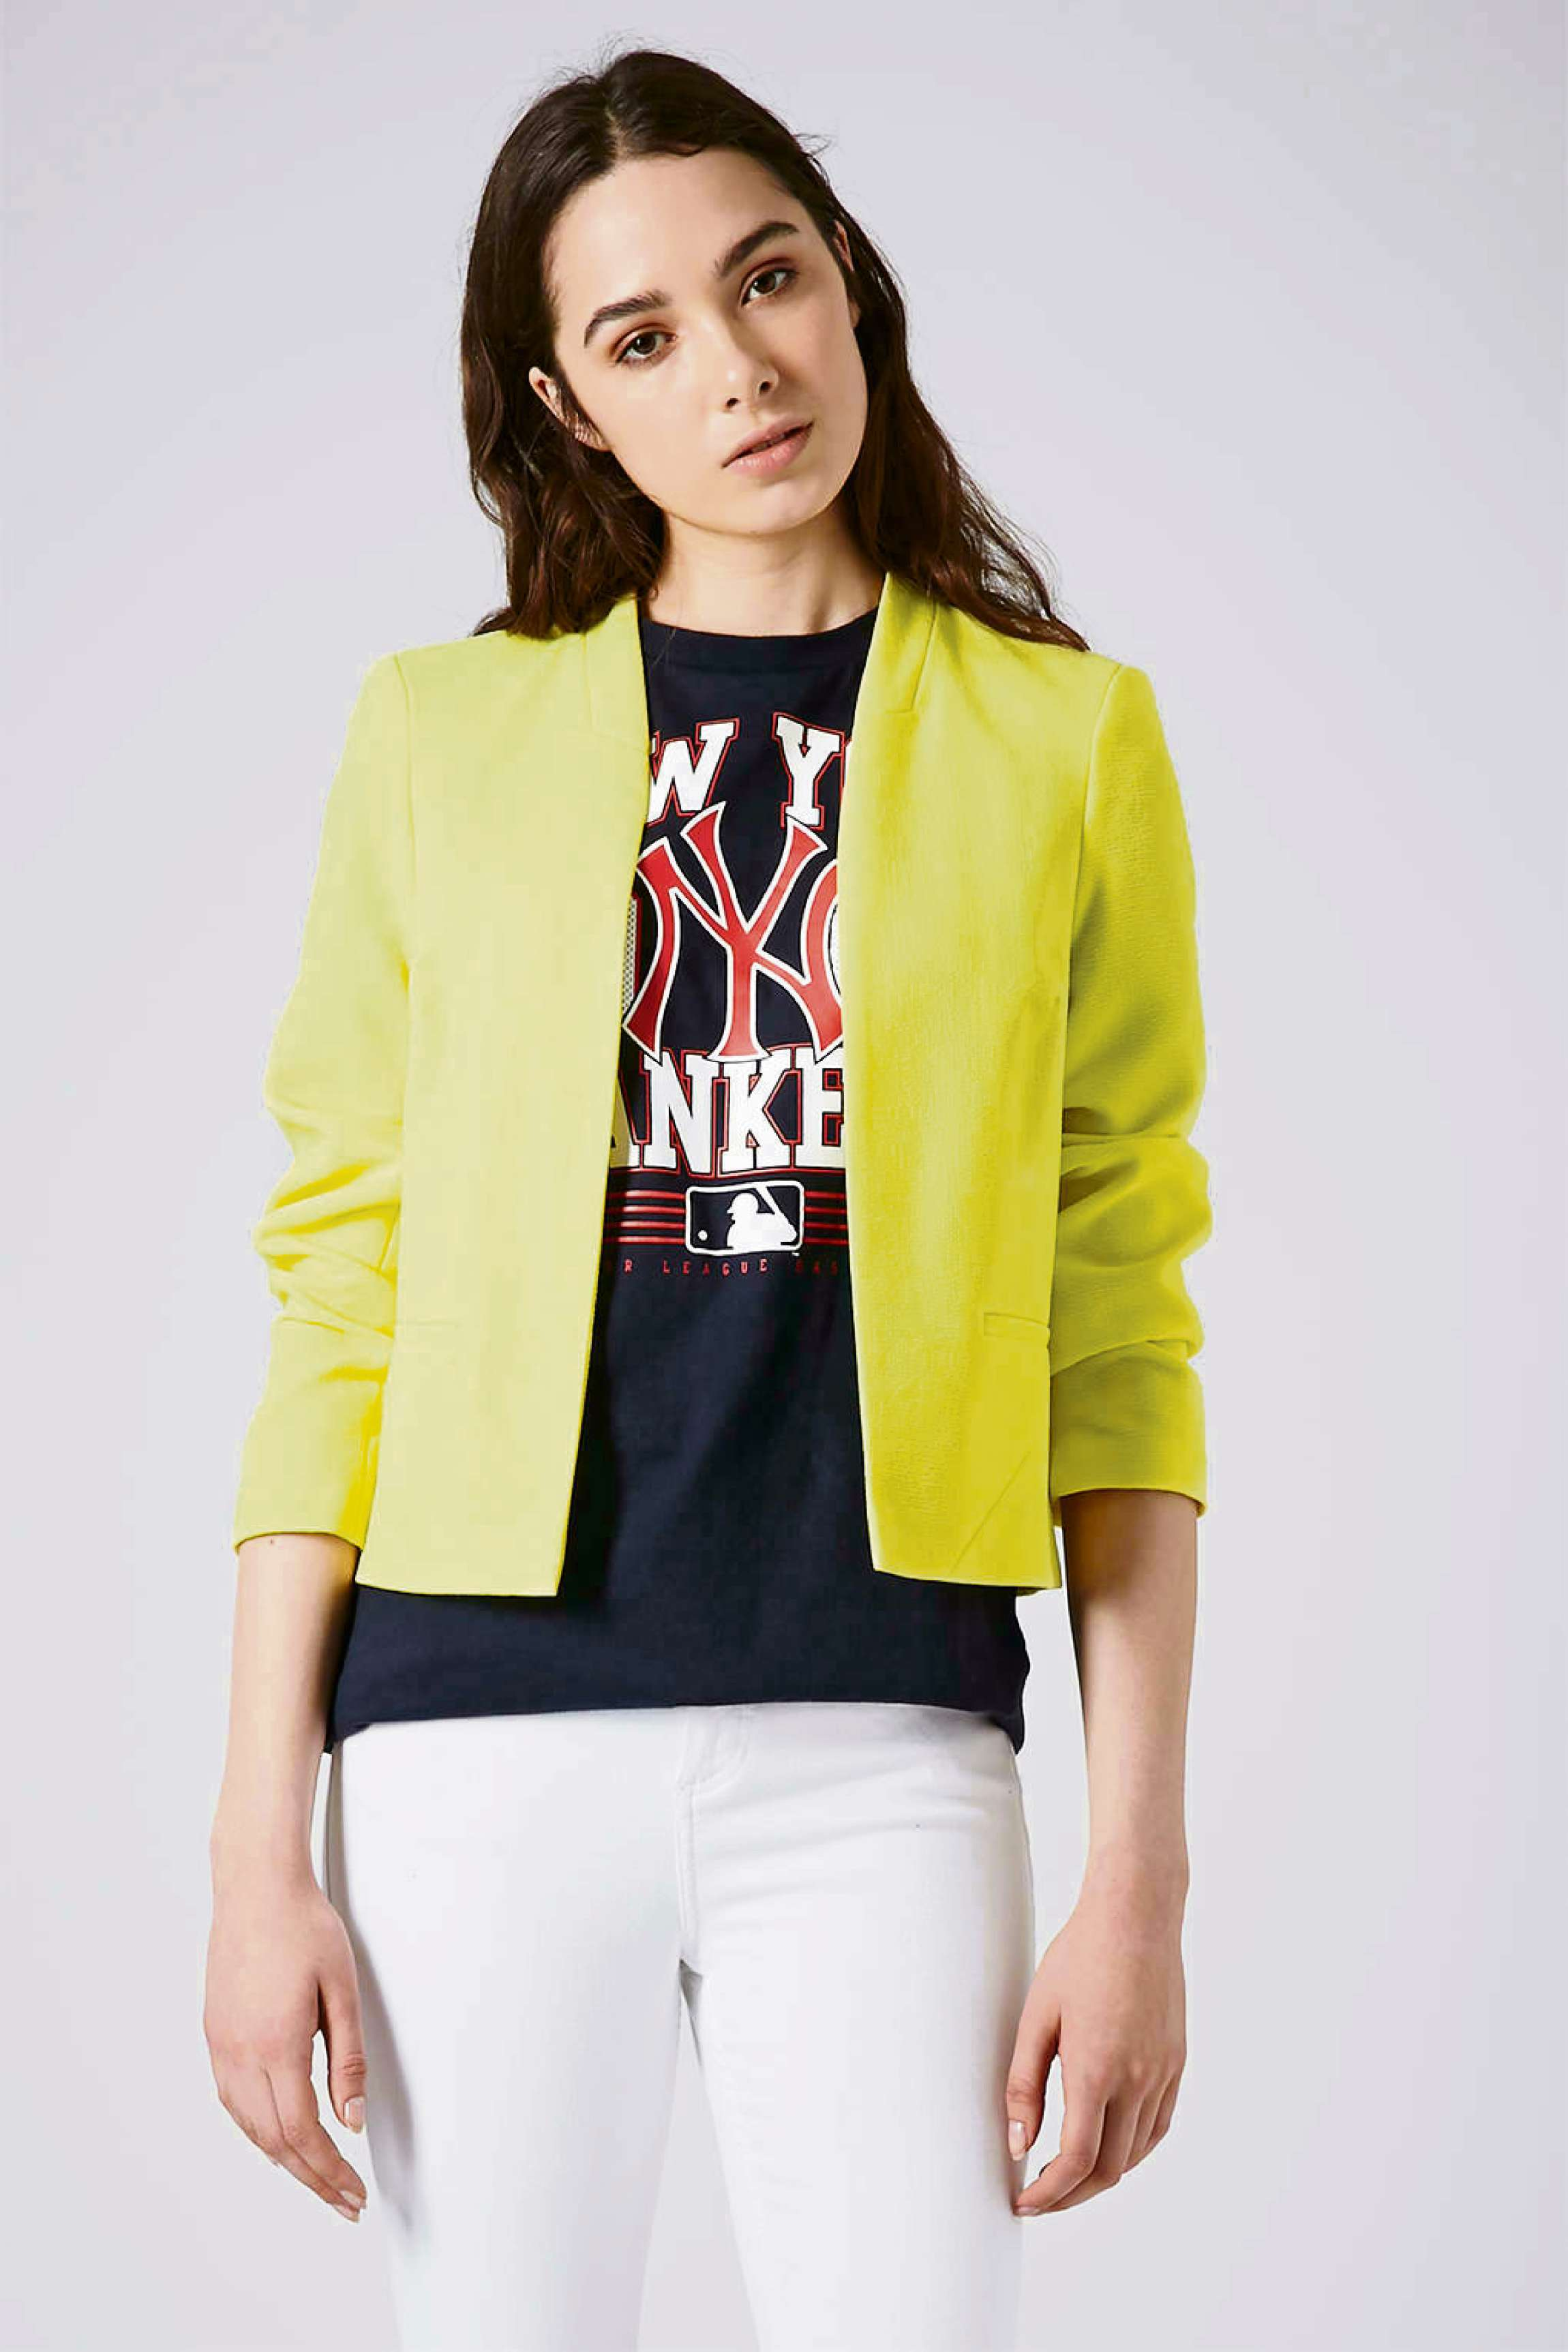 IT'S THE WEEKEND: Shopping with Keiligh Baker - Hot yellow looks for summer